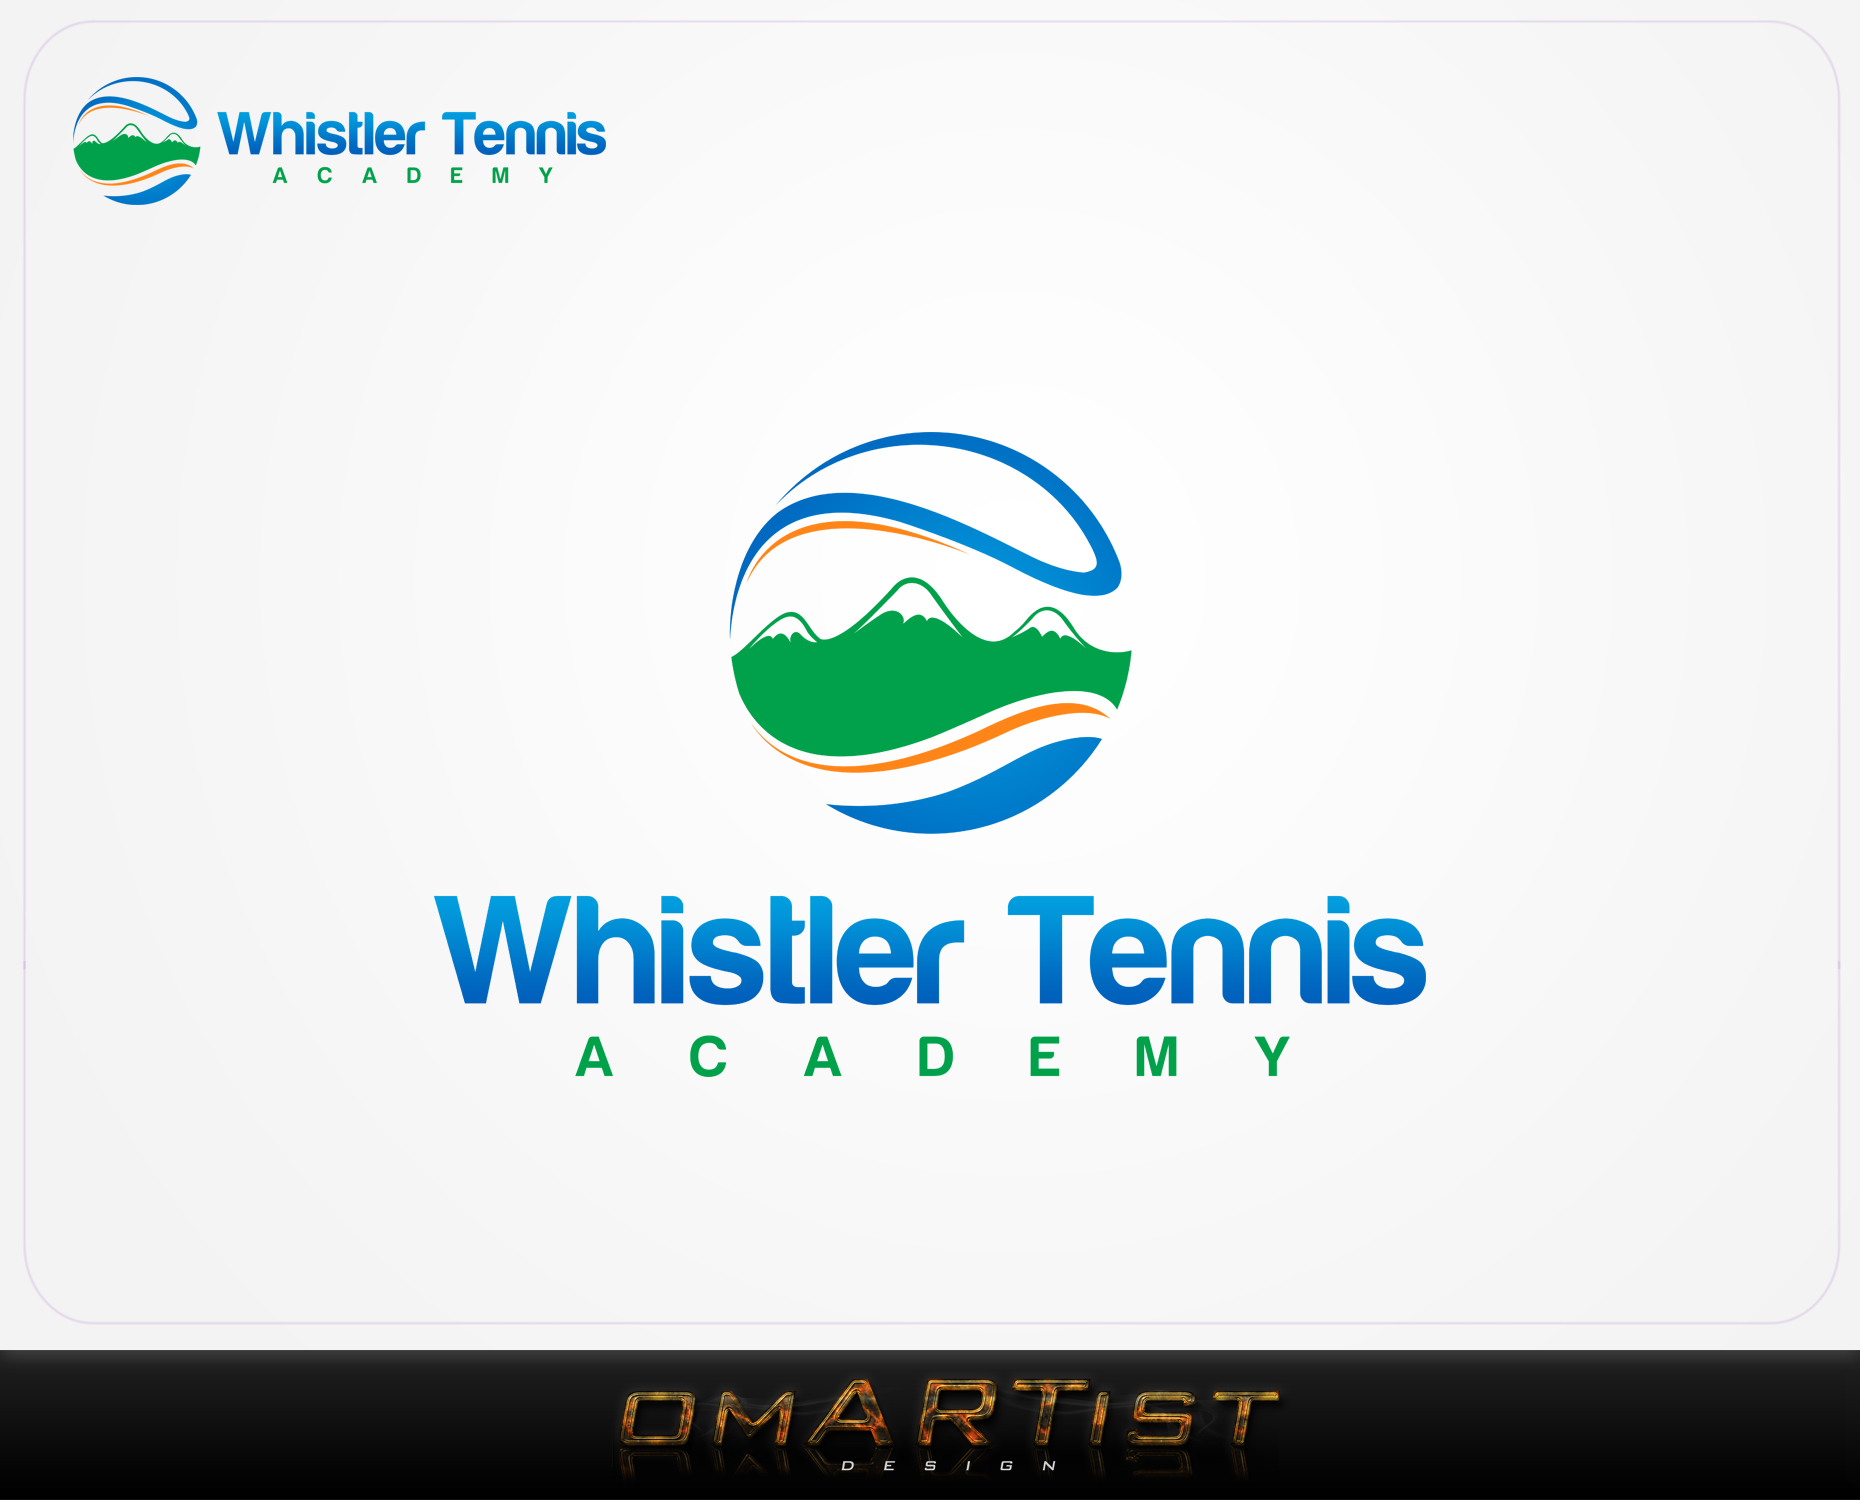 Logo Design by omARTist - Entry No. 290 in the Logo Design Contest Imaginative Logo Design for Whistler Tennis Academy.